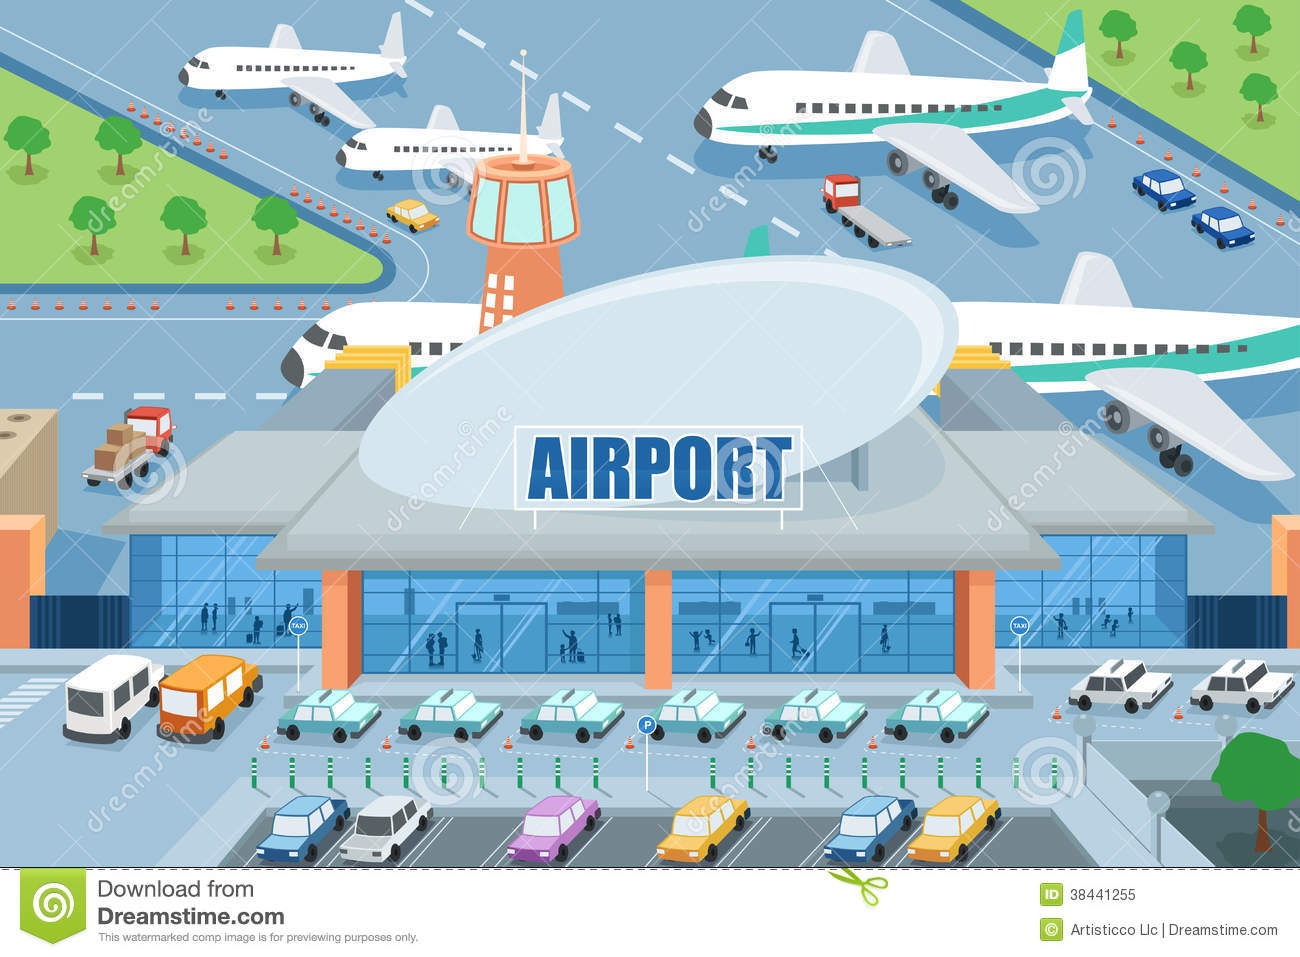 Airport clipart. Free panda images airportclipart